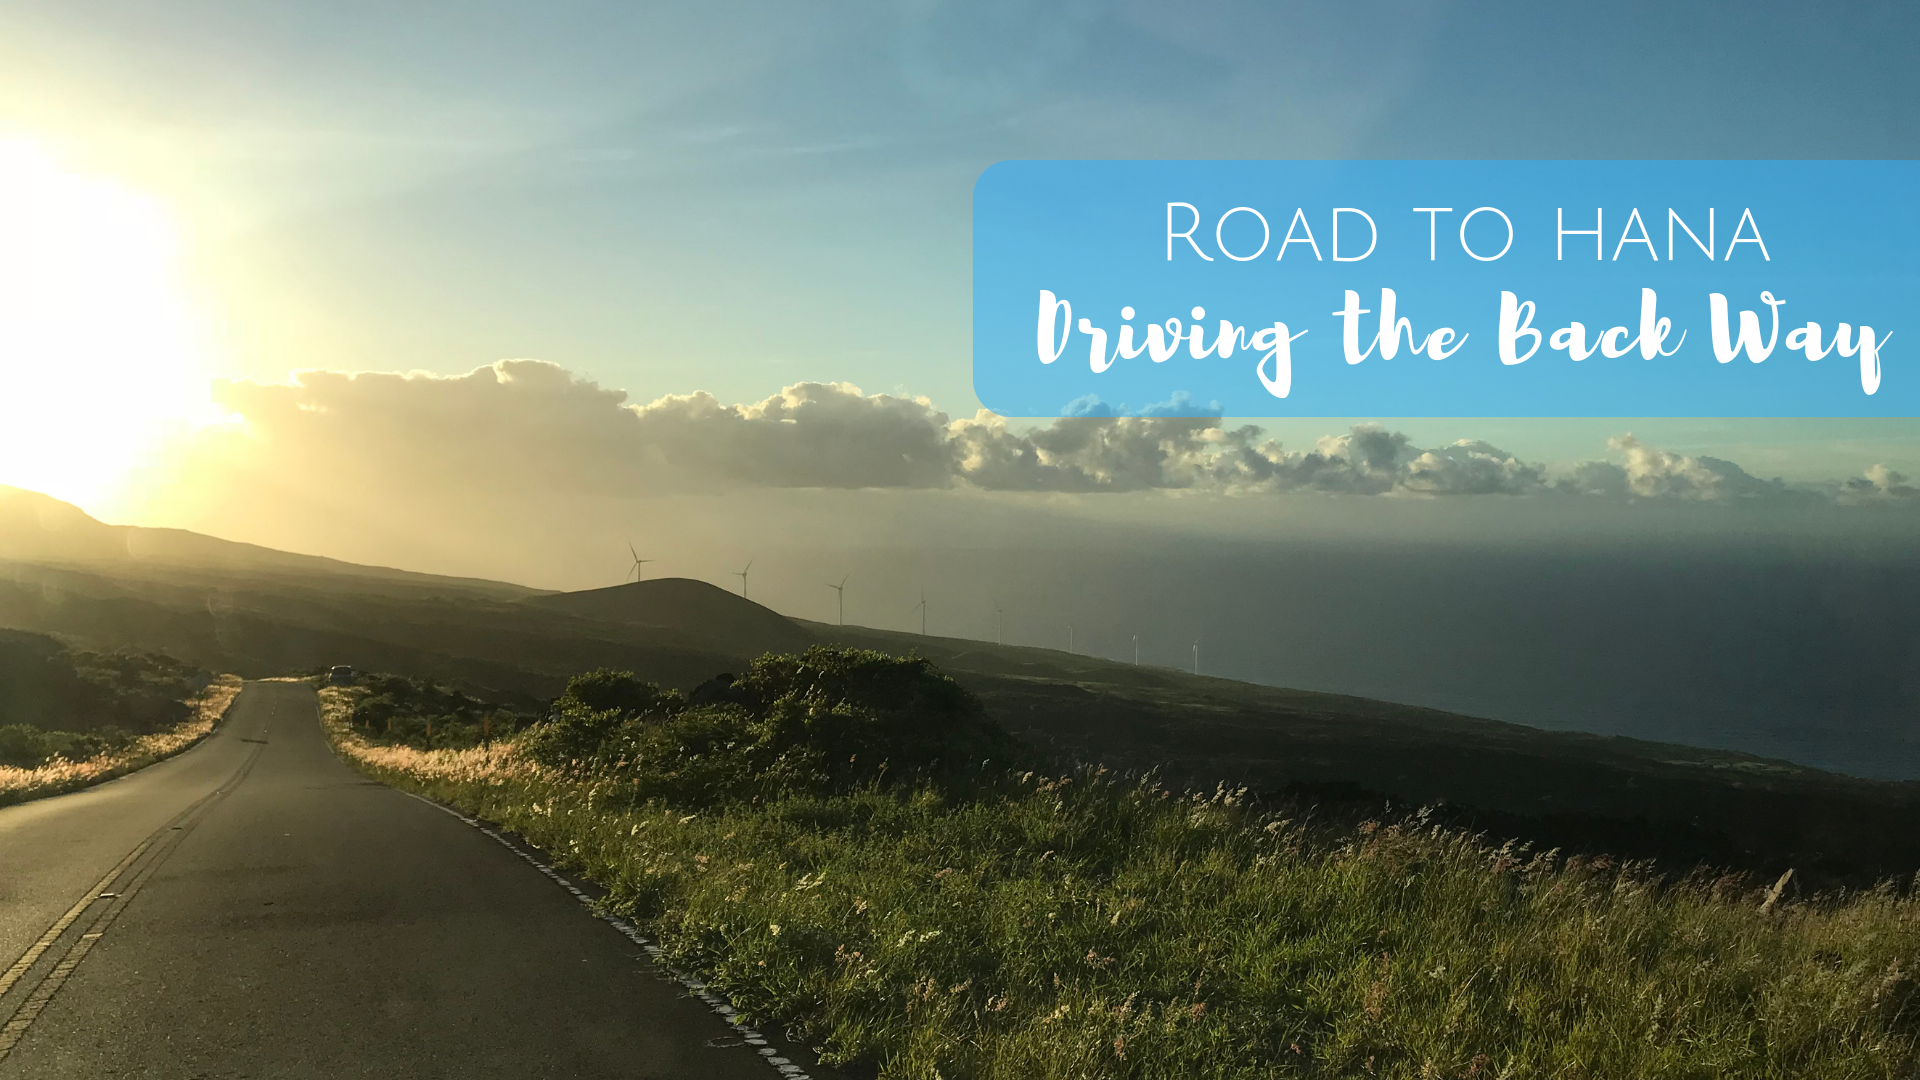 Driving the Road to Hana in Maui. Take the back way, the Piilani Highway.